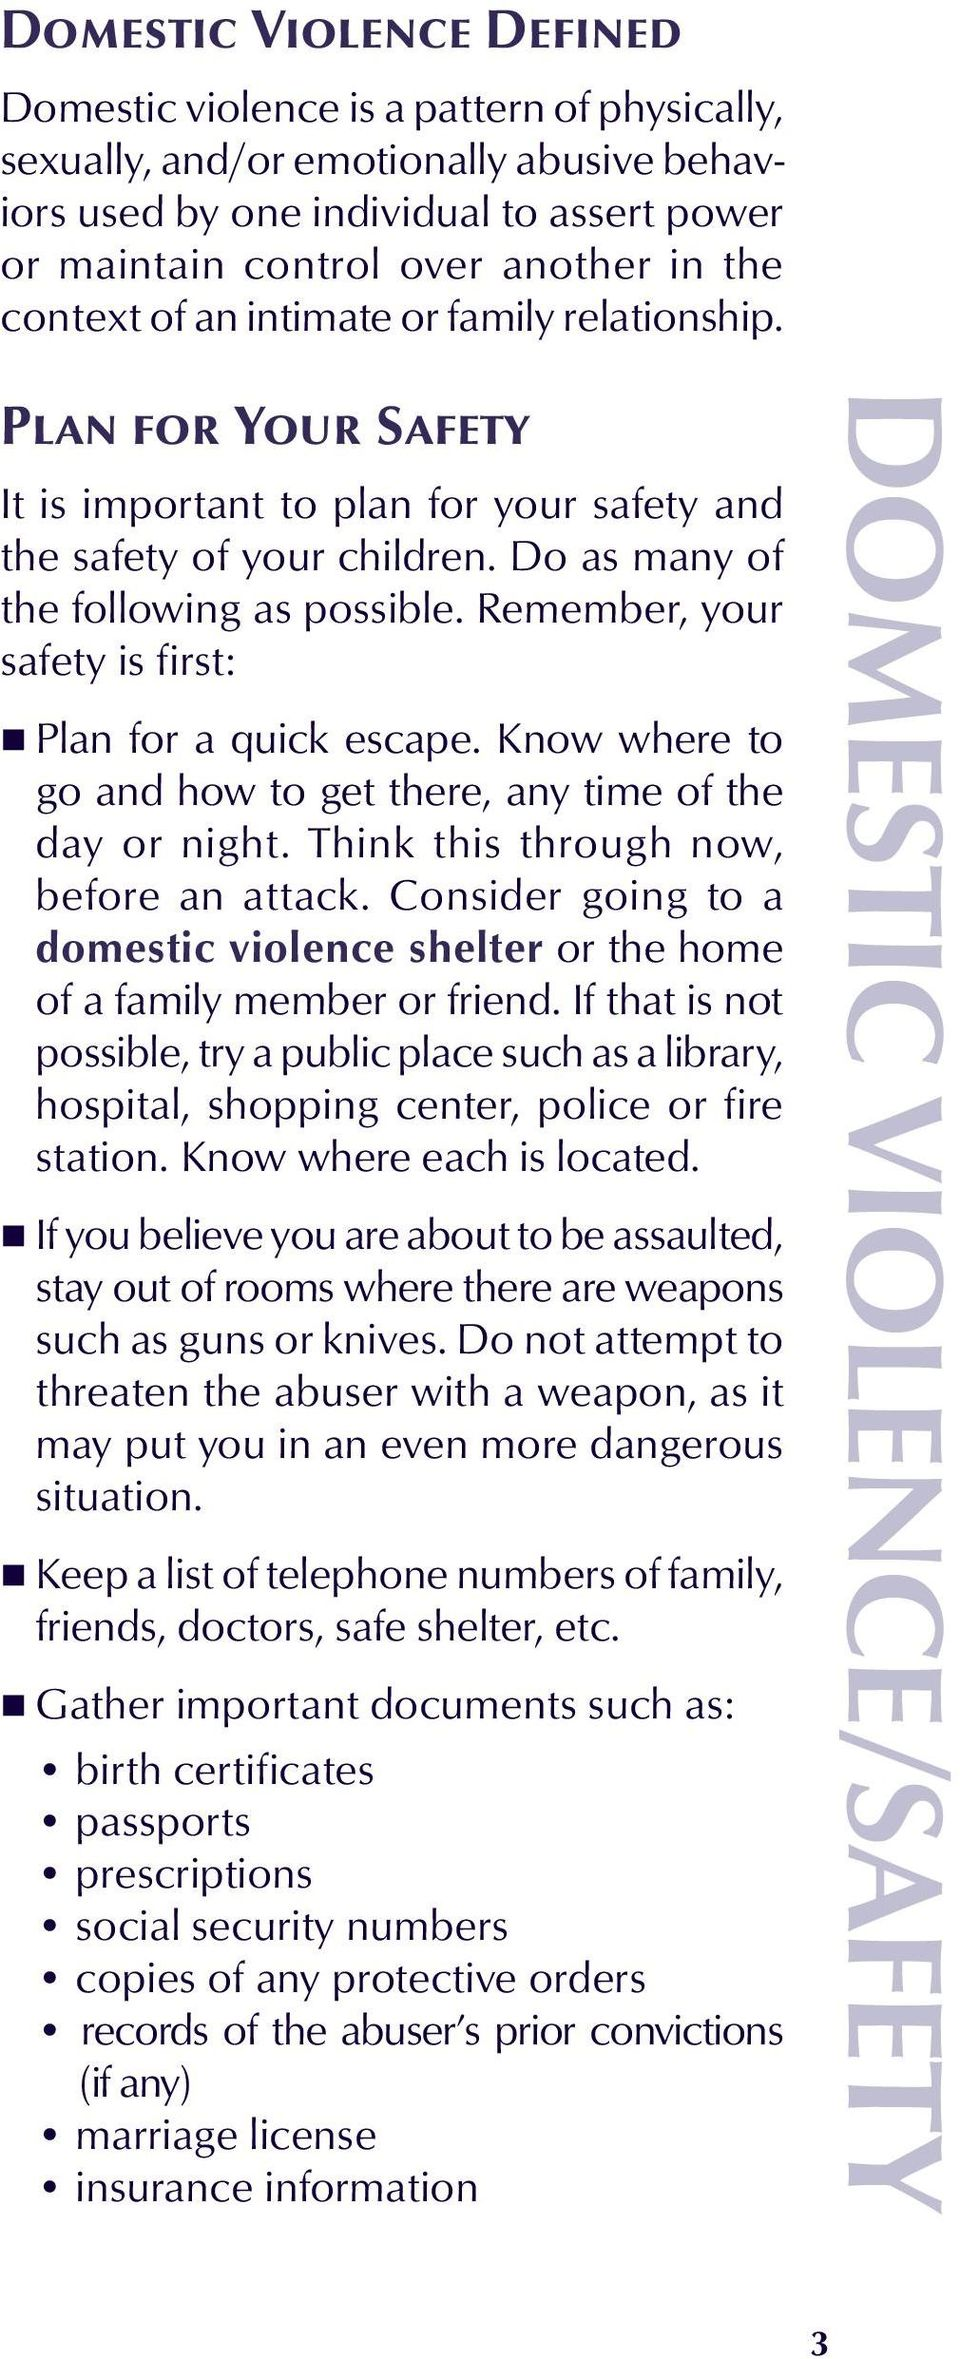 Do as many of the following as possible. Remember, your safety is first: Plan for a quick escape. Know where to go and how to get there, any time of the day or night.